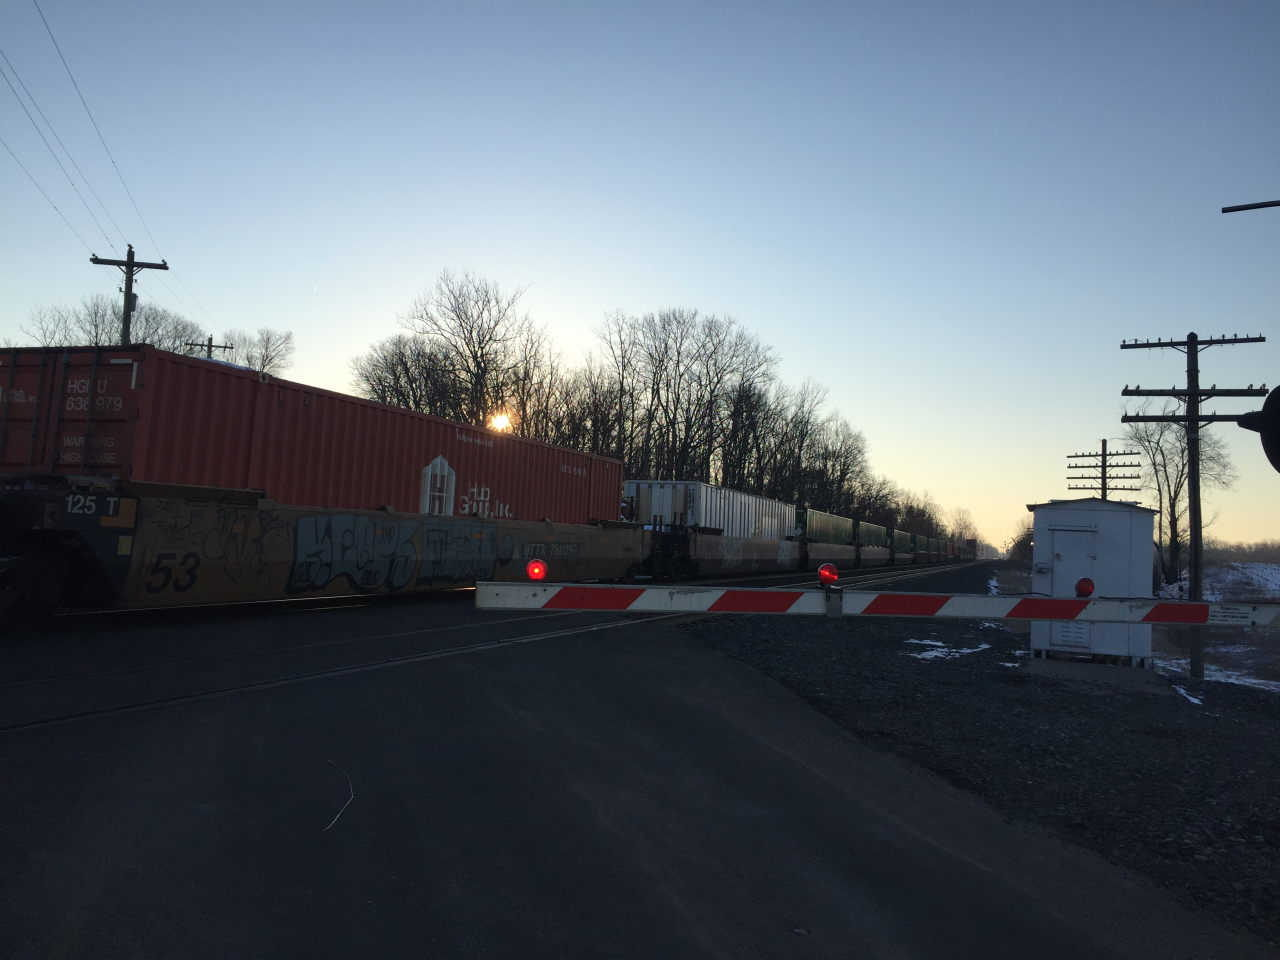 Freight cars and crossing, Indiana